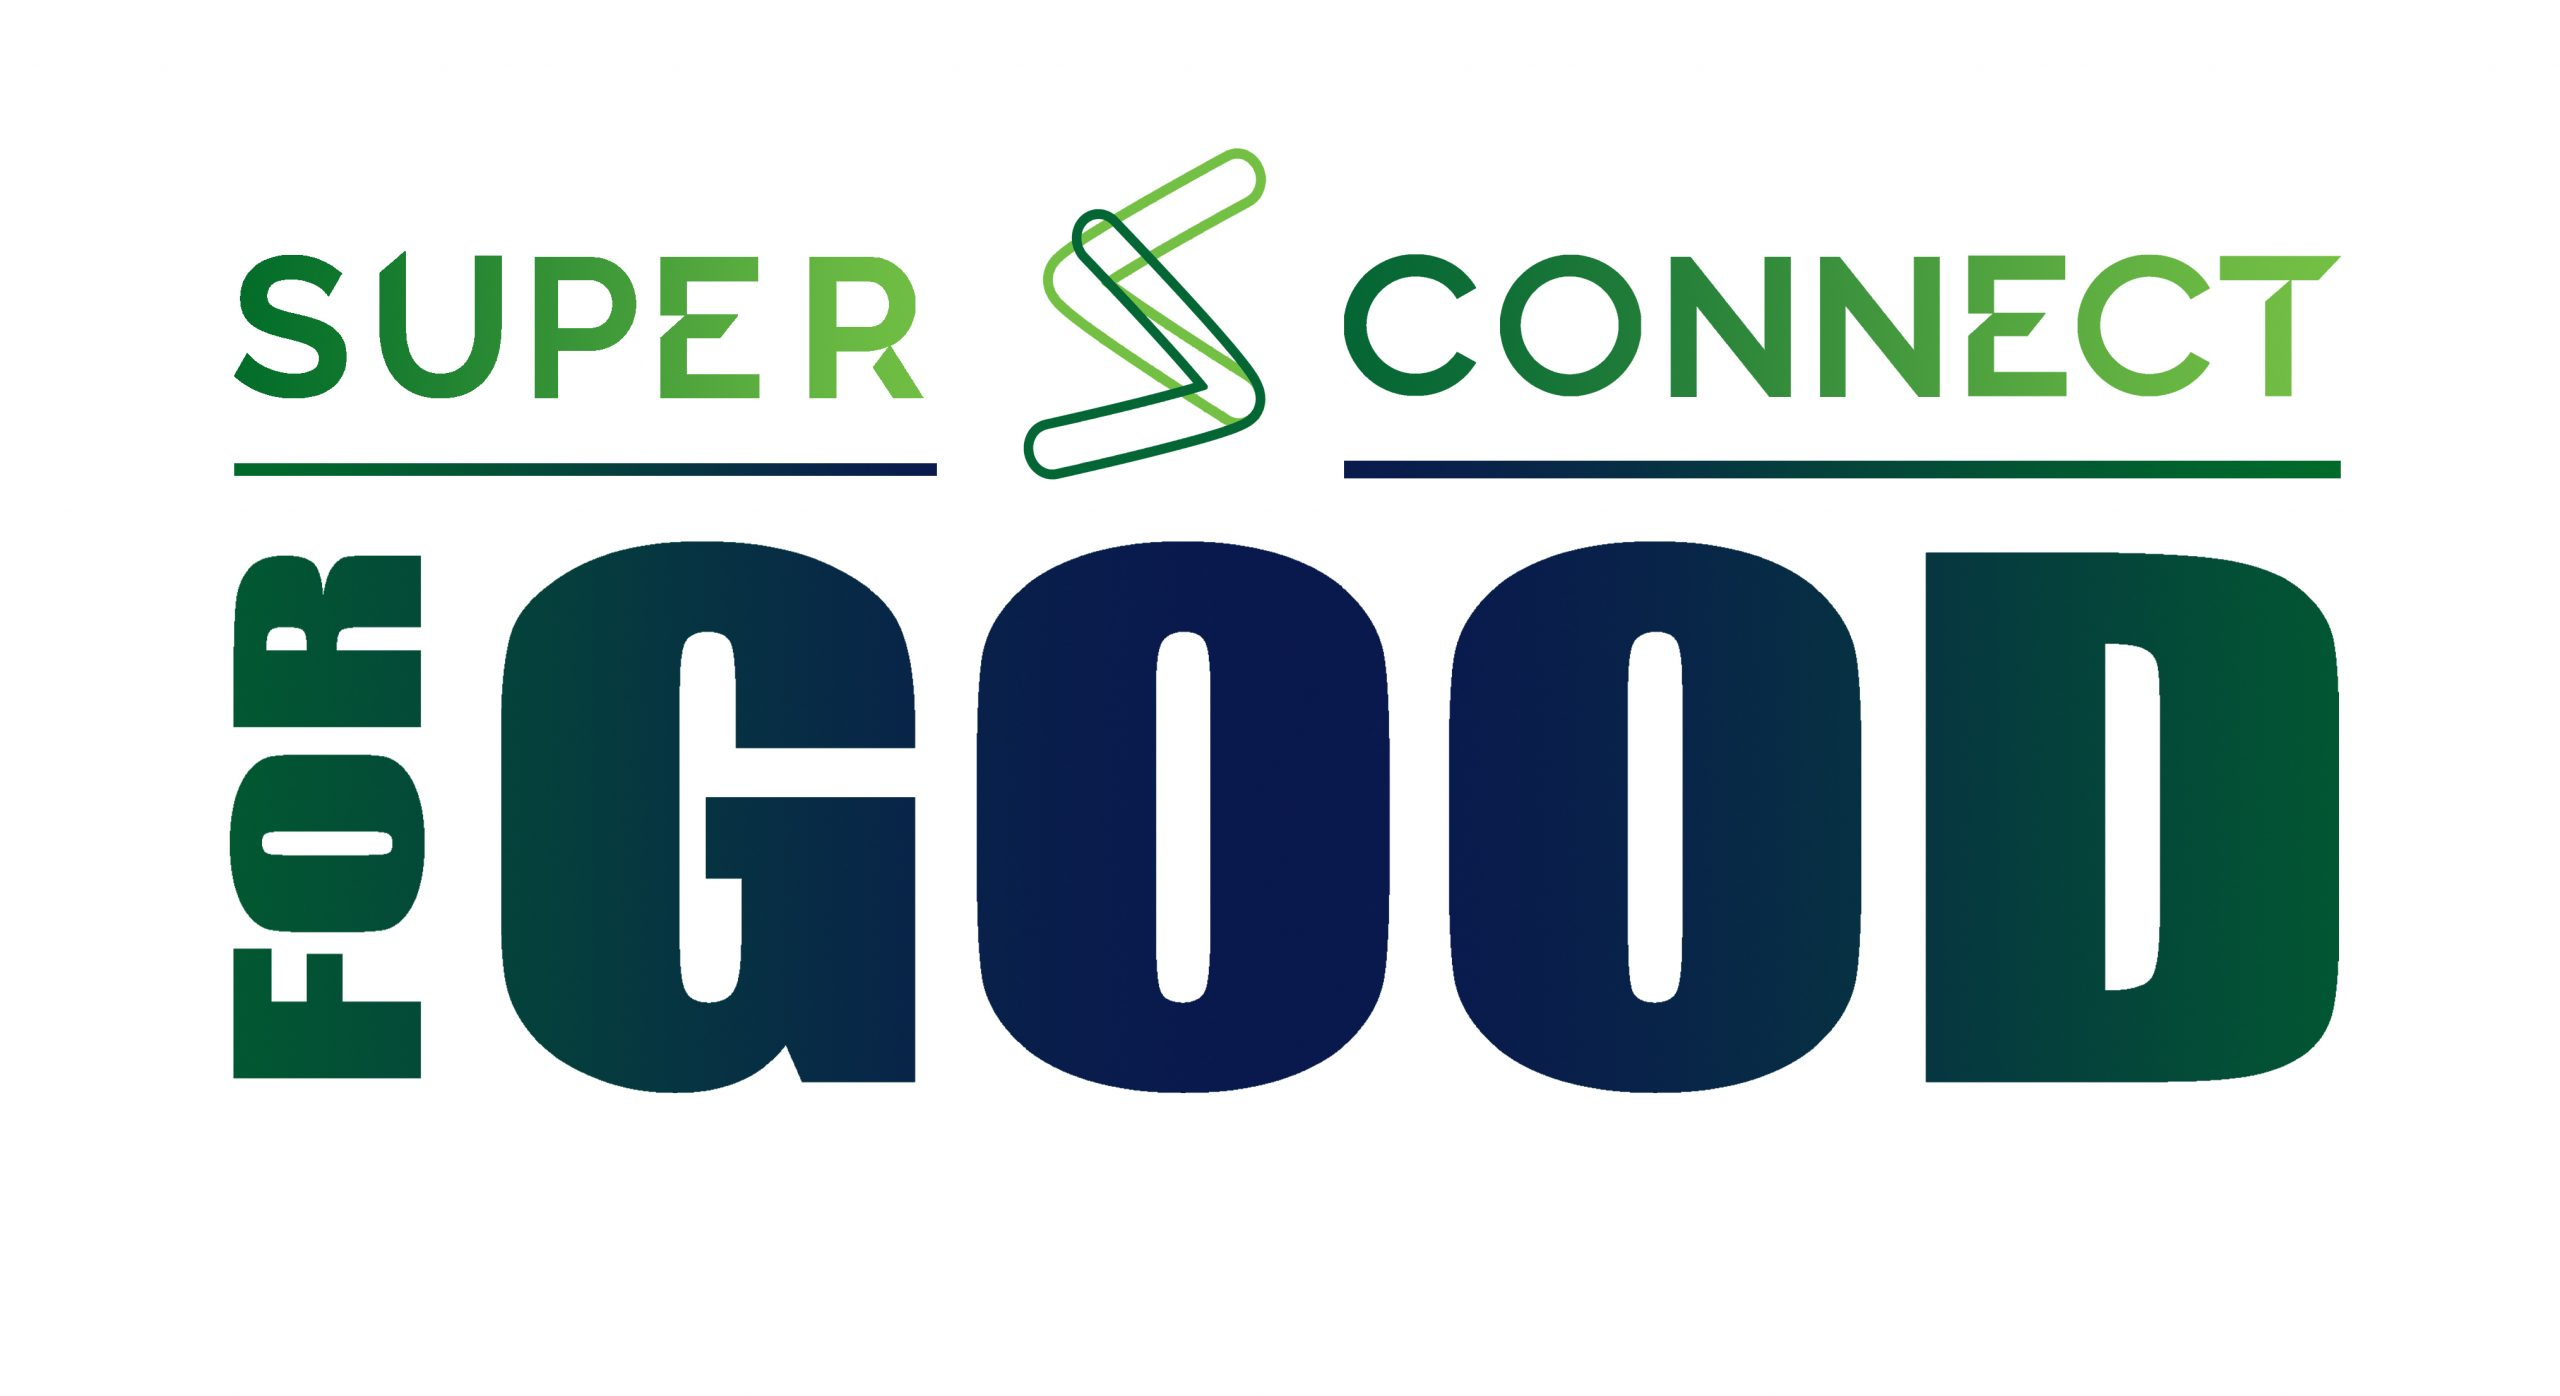 Super Connect For Good logo